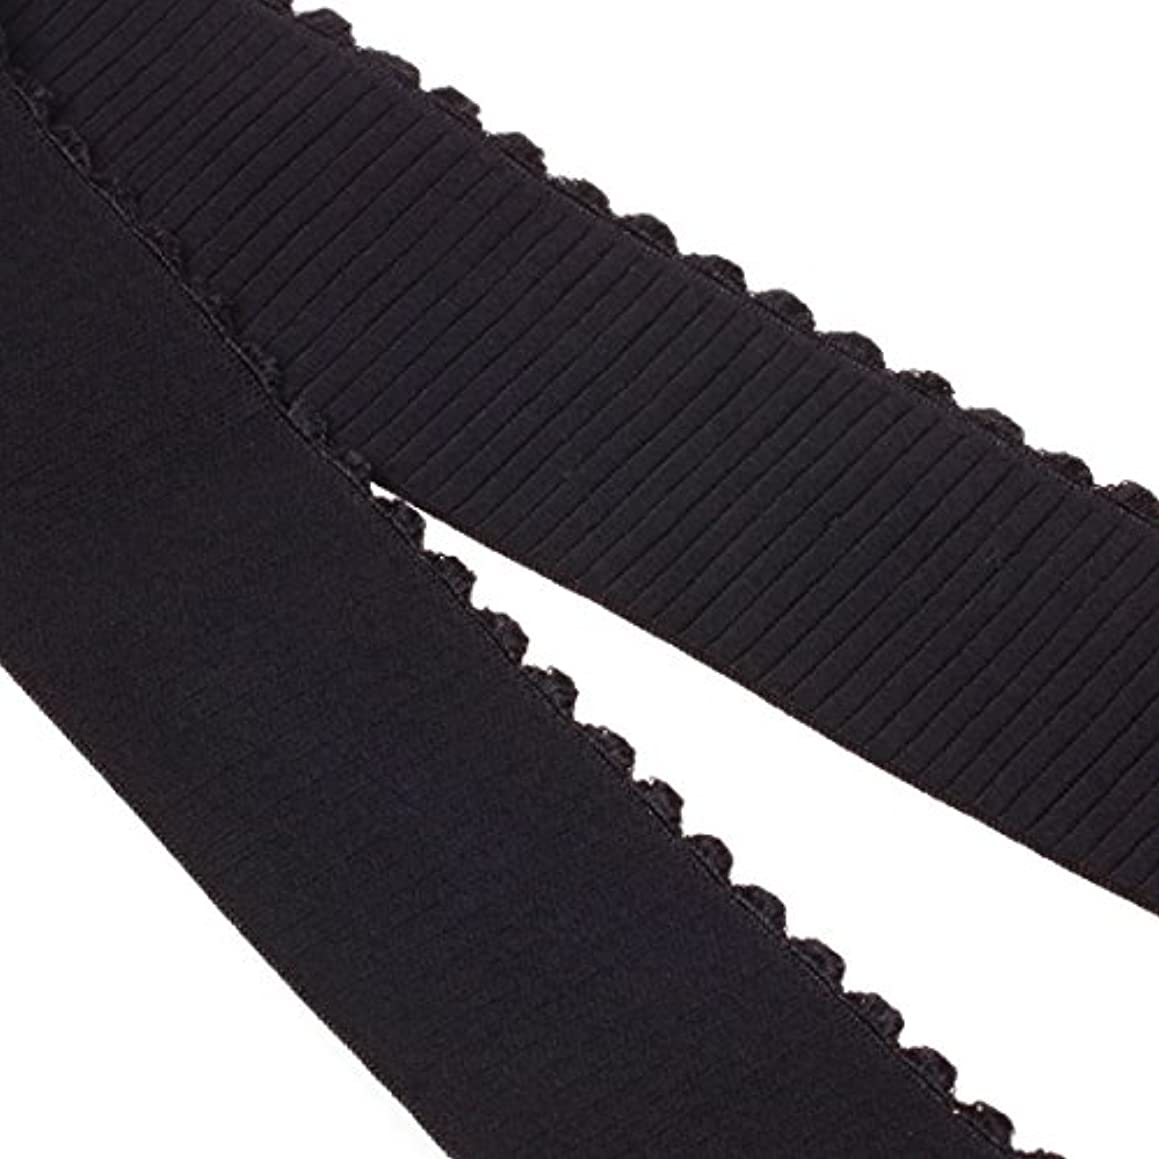 COTOWIN 2-inch Wide Plush Wavy Edge Elastic By 3 Yard, Comfortable Sewing Elastic Waistband Band